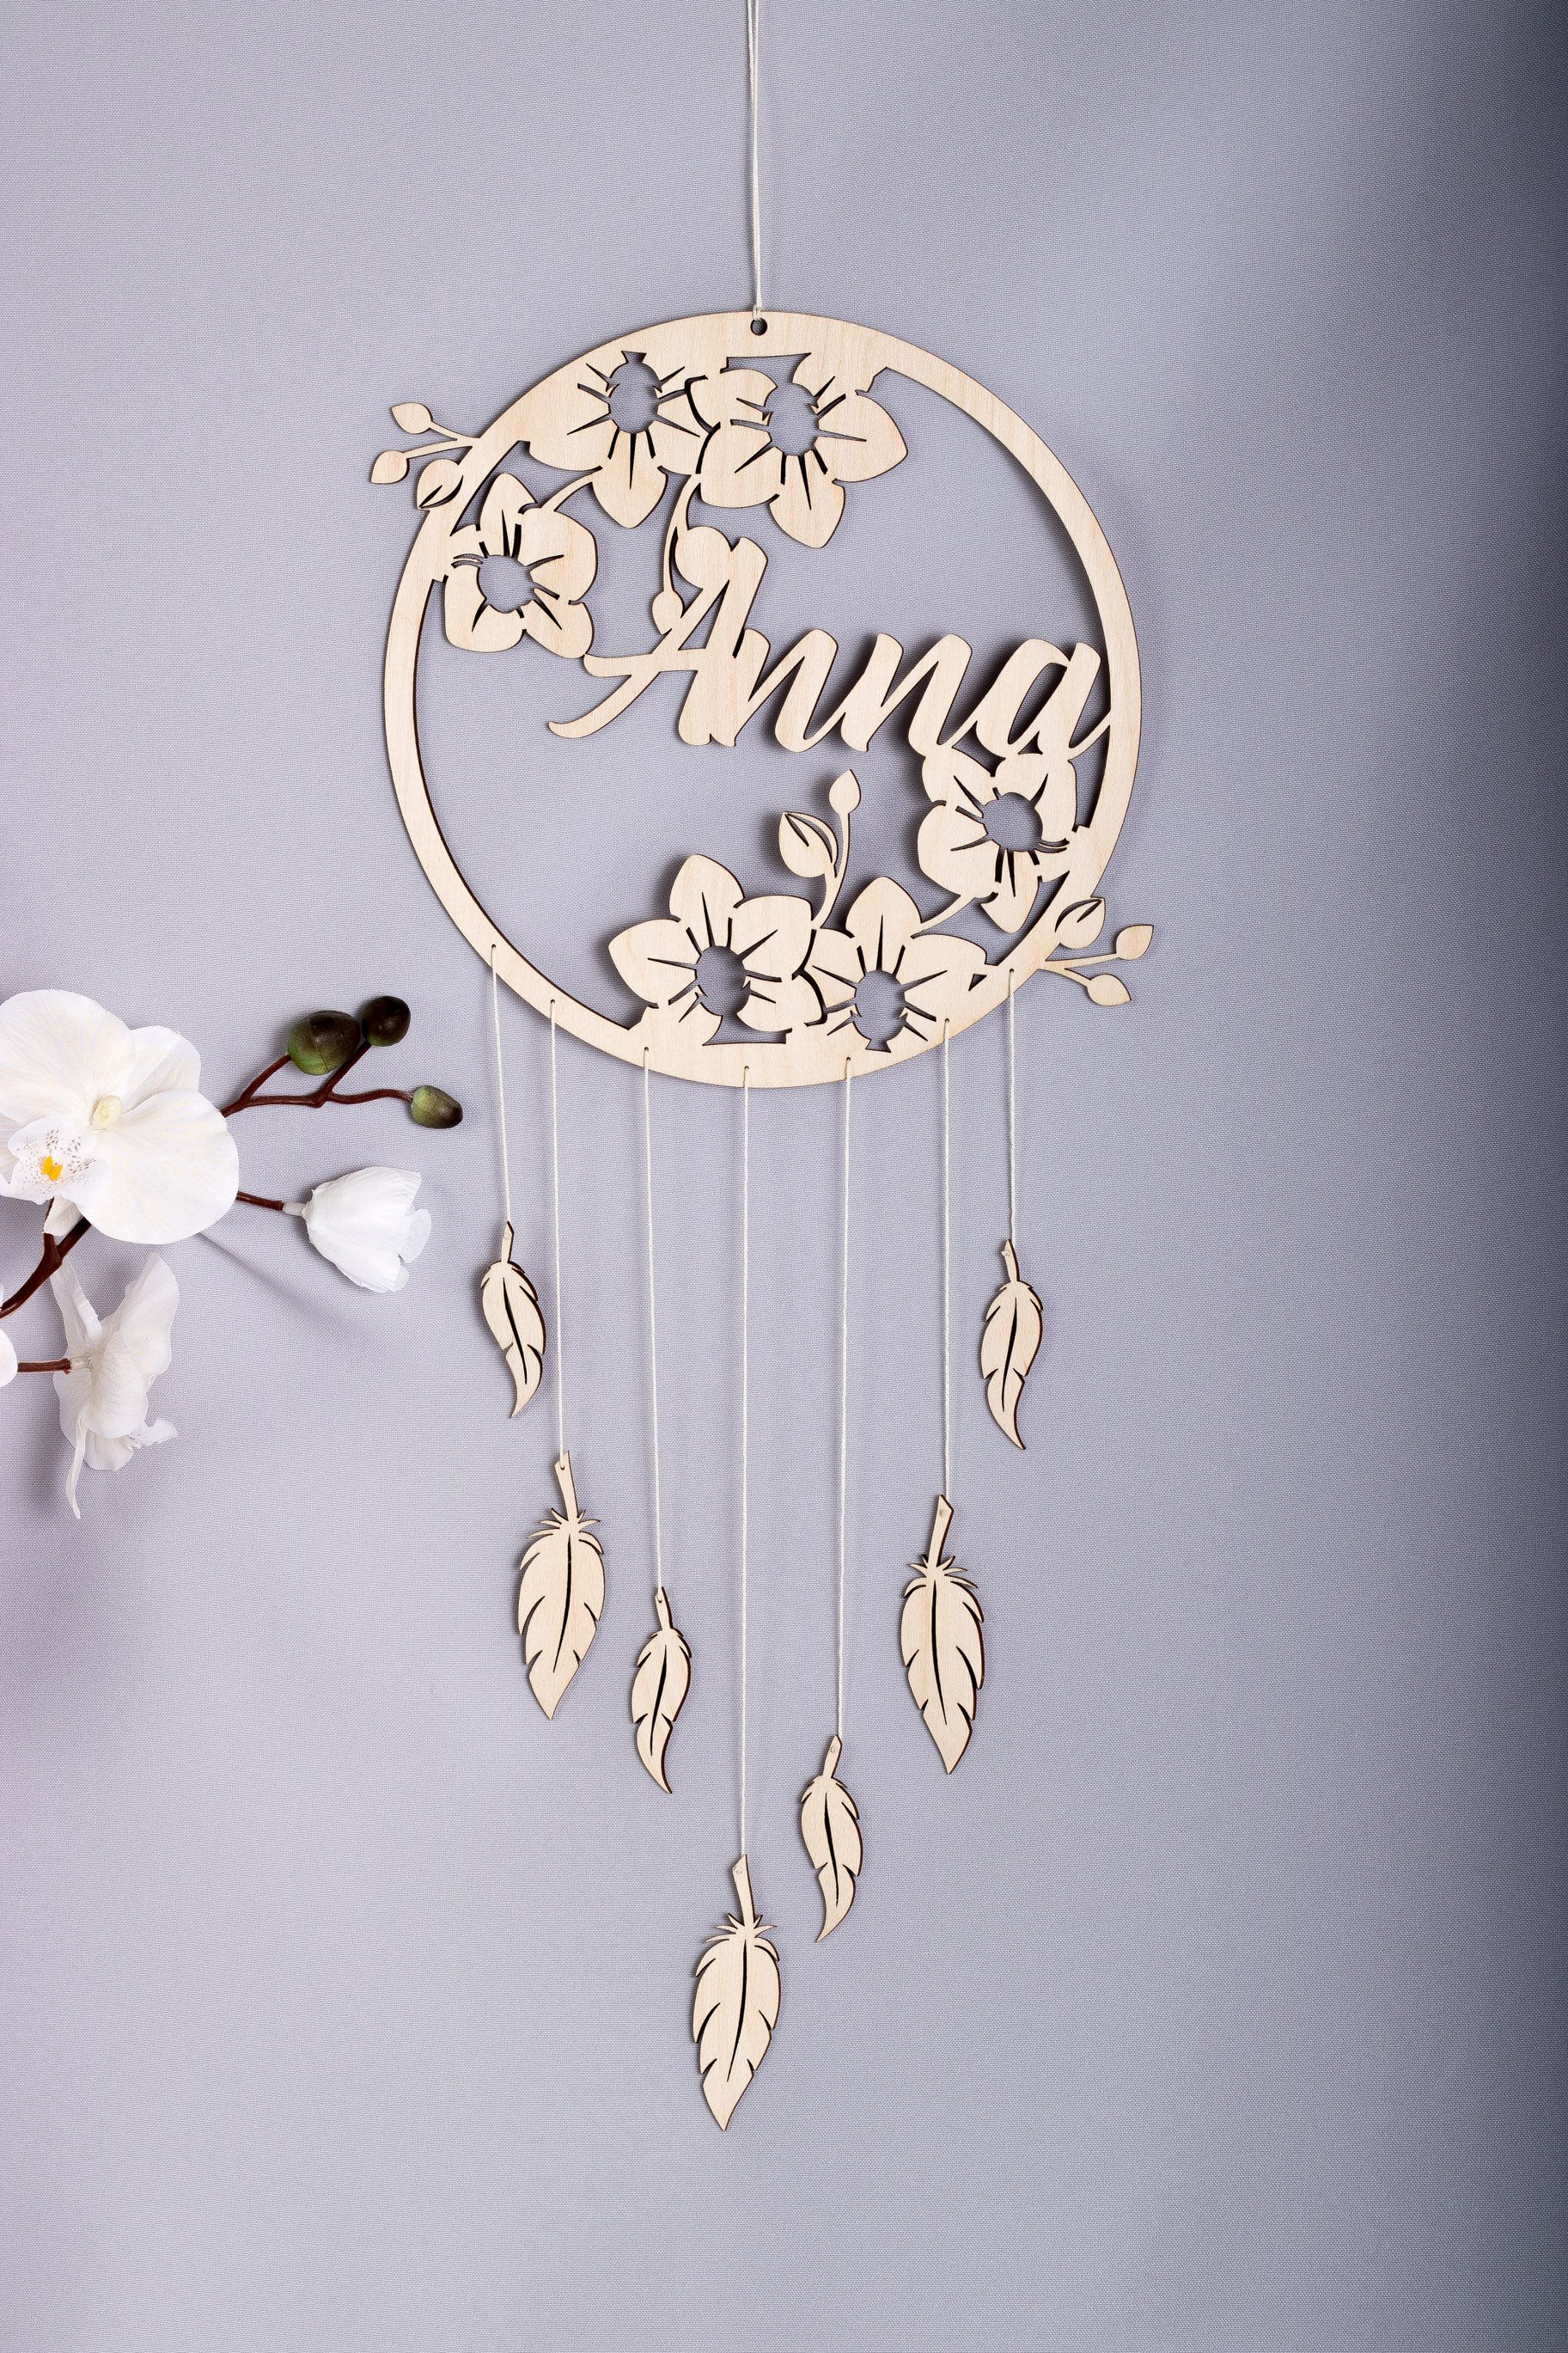 Orchids Personalised Wooden Dream Catcher Wall Hanging Wall Etsy Wooden Dream Catcher Laser Engraved Ideas Graduation Center Pieces